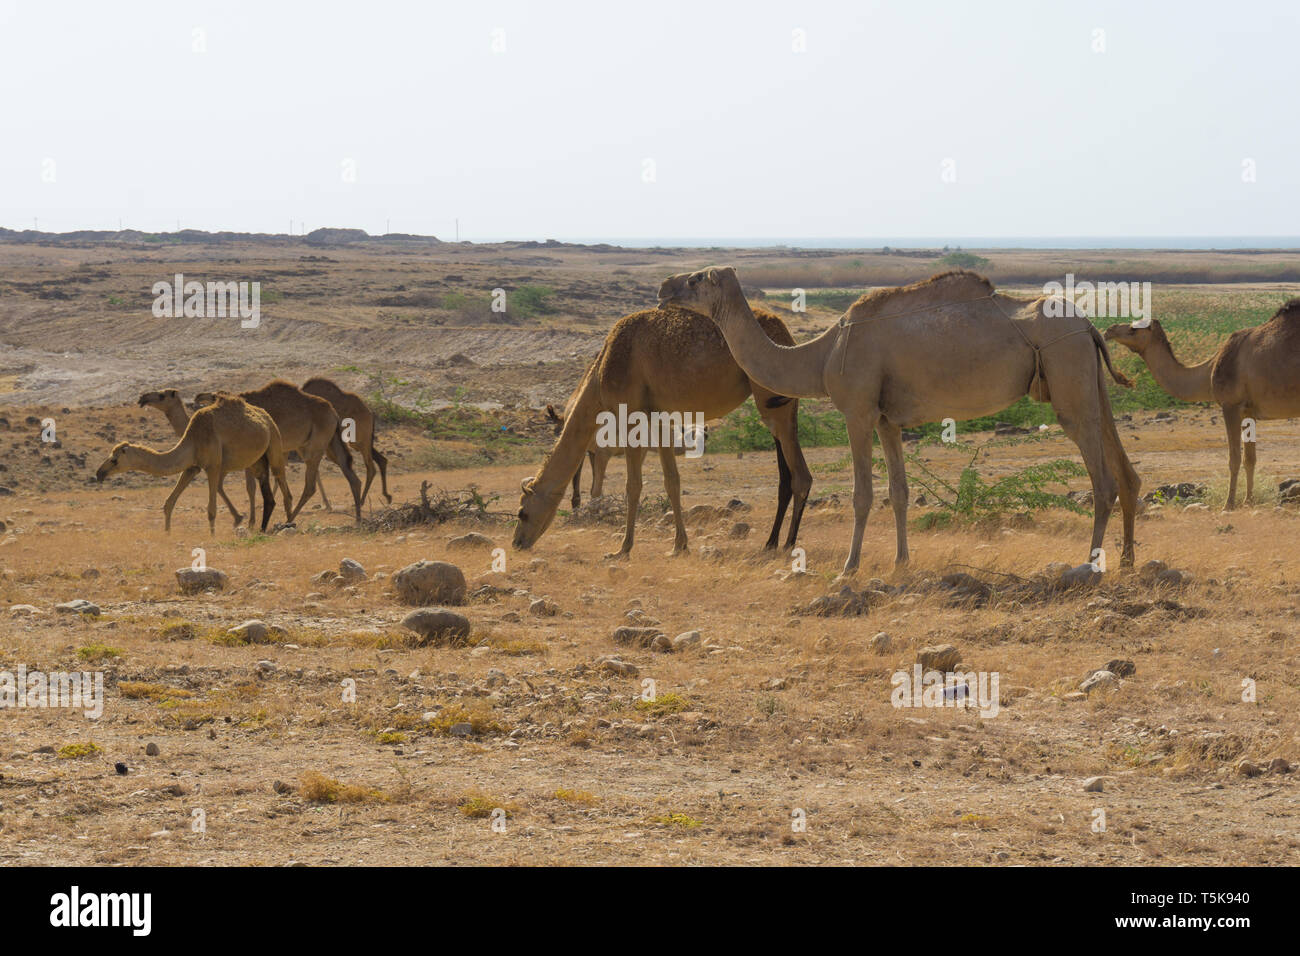 Camels, Salalah, Dhorfar, Oman Stock Photo